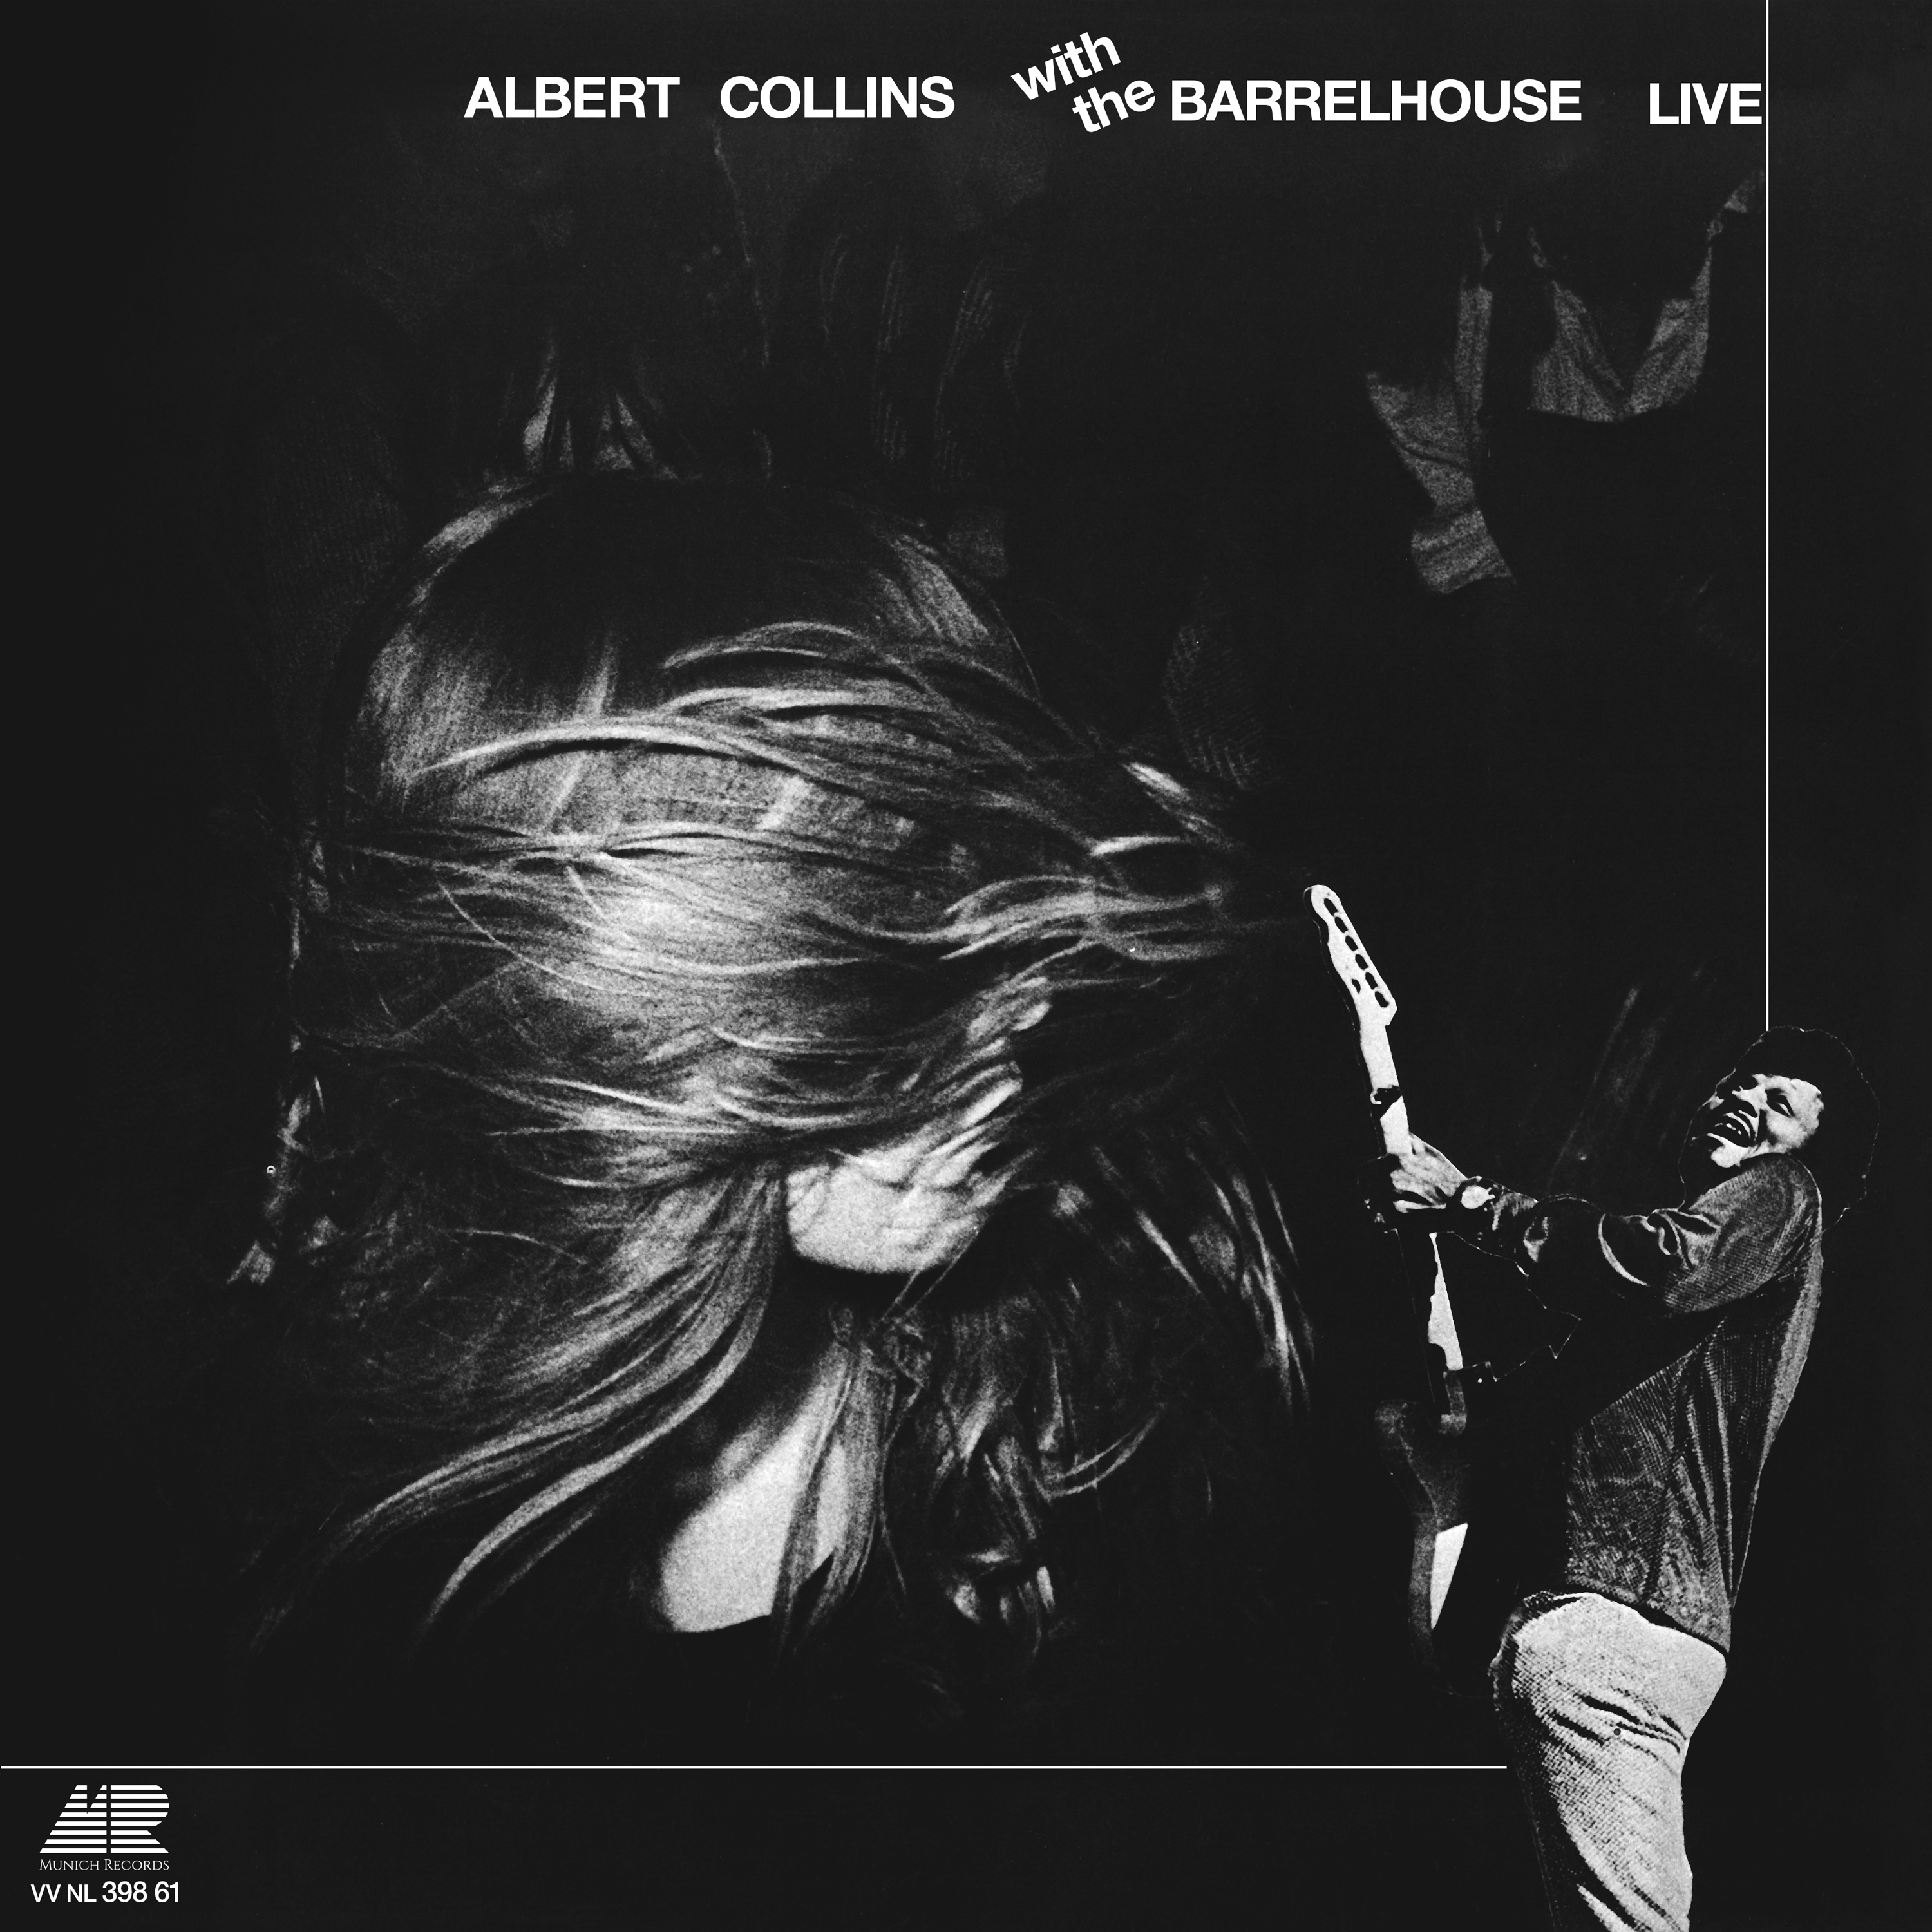 Collins Collins  / Barrelhouse - Live (Rsd) (Blk) (Bonus Track) [Colored Vinyl] [180 Gram] (Red) [RSD Drops 2021]